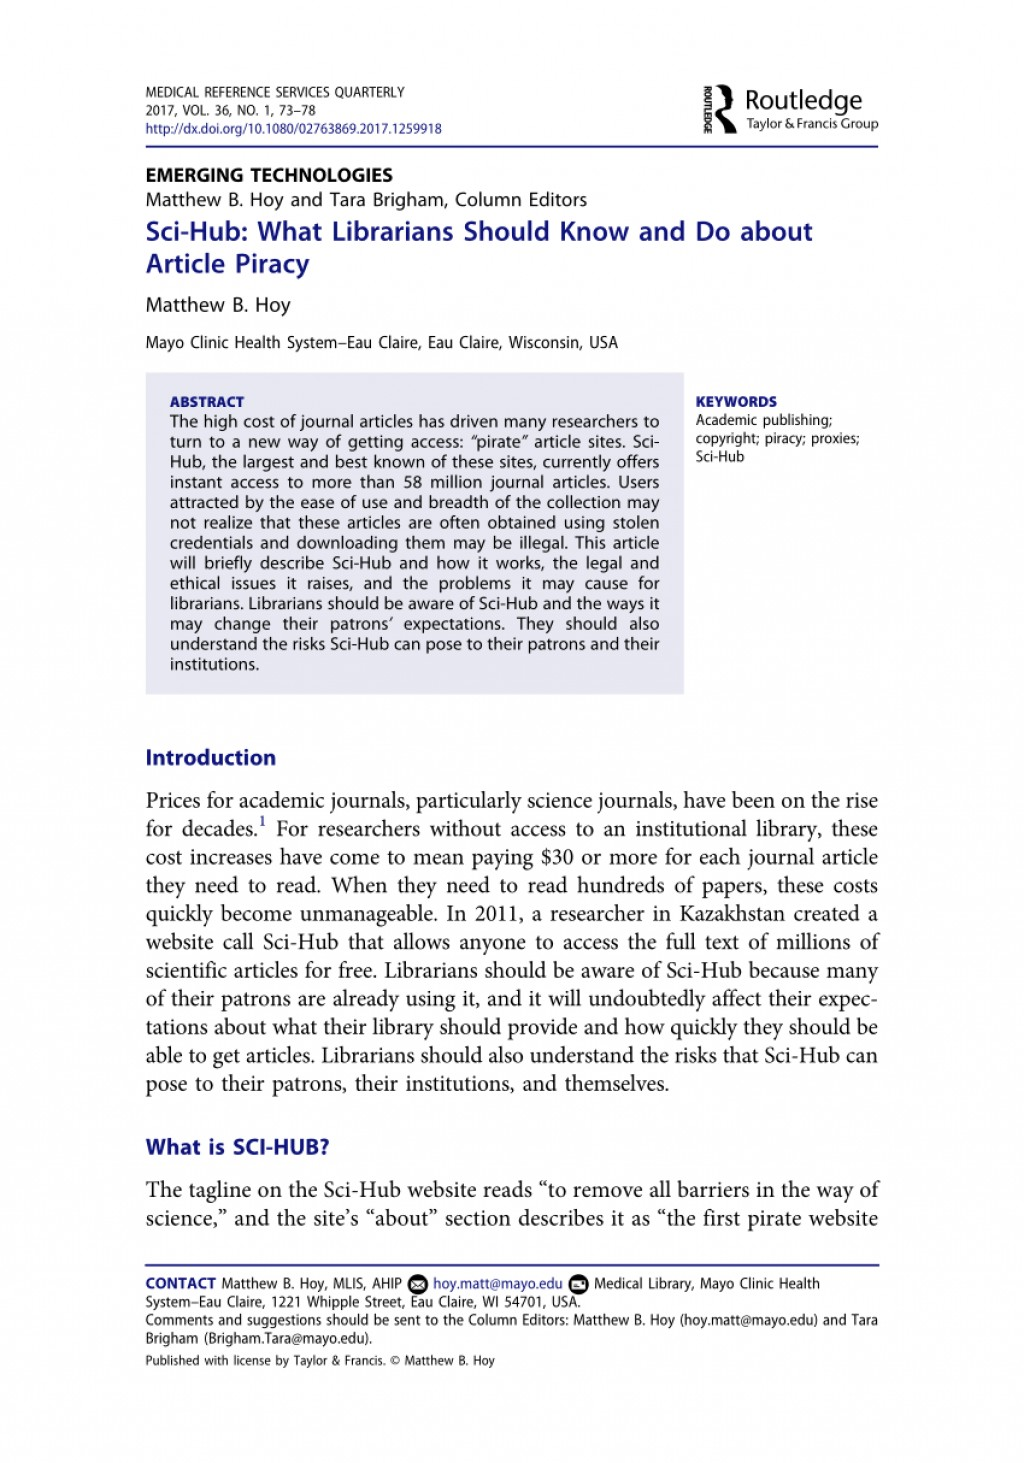 018 Pirate Website For Researchs Largepreview Amazing Research Papers Large